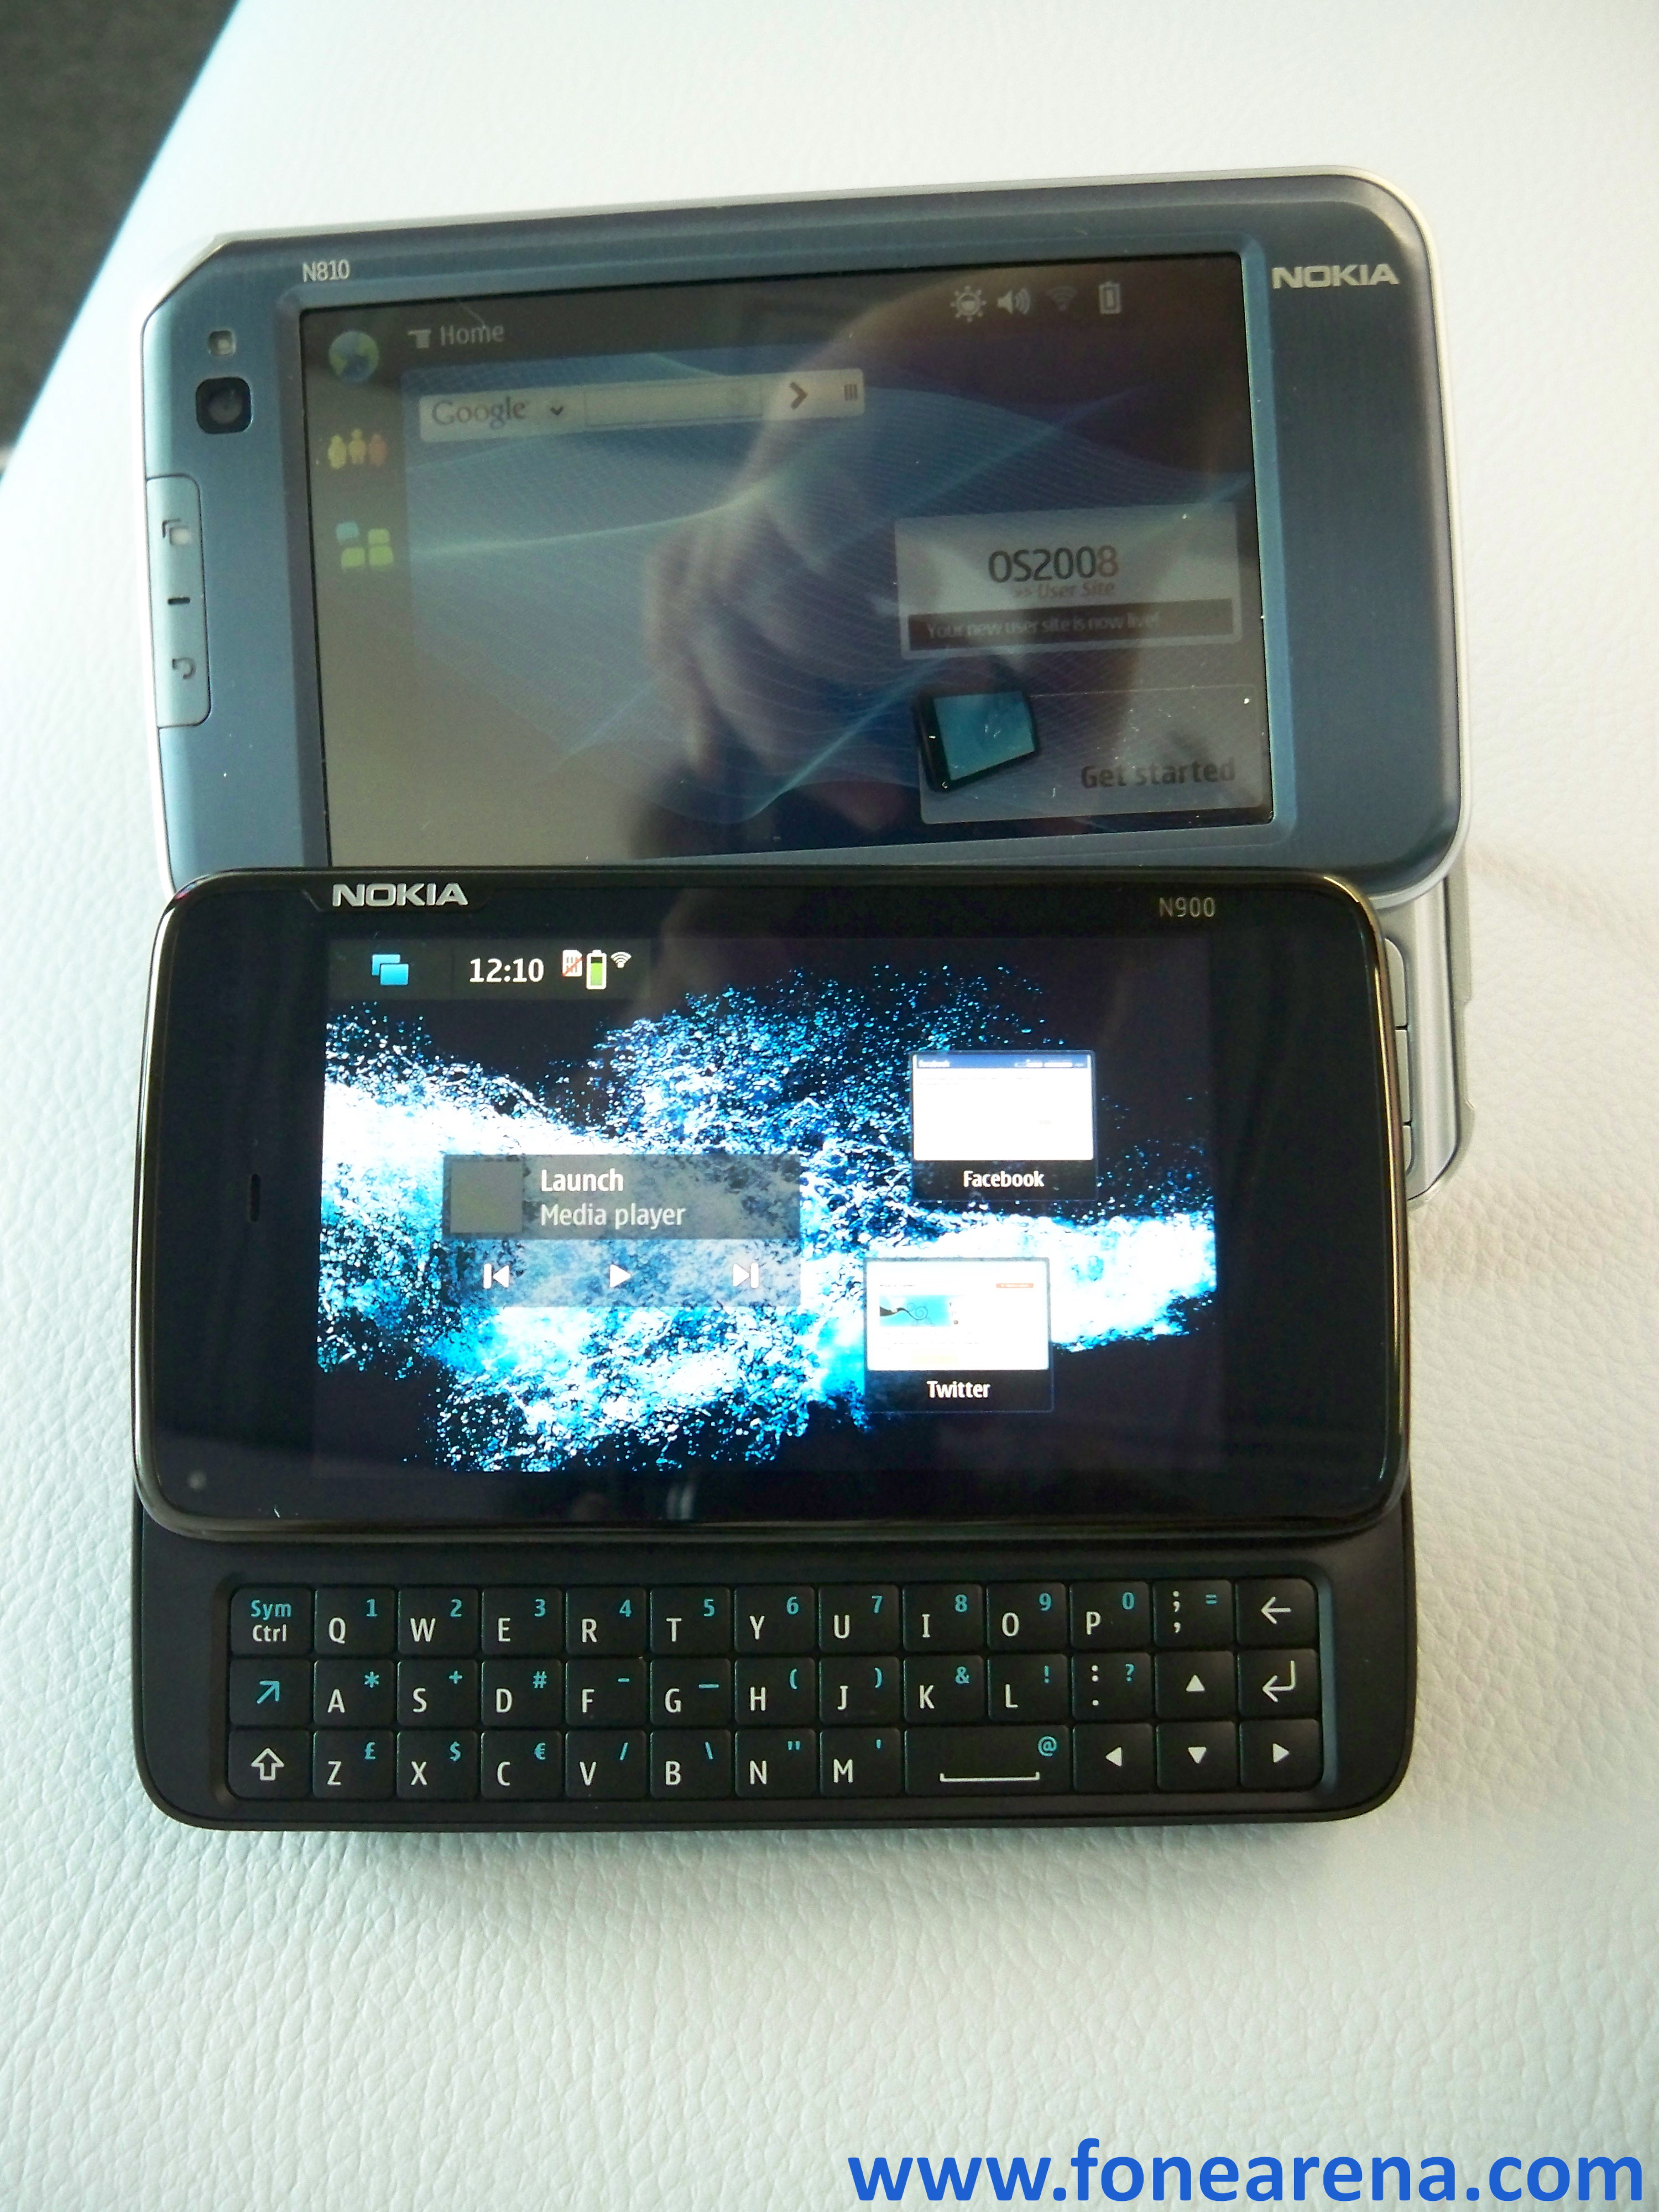 Nokia N900 Photo Gallery And N810 Comparison